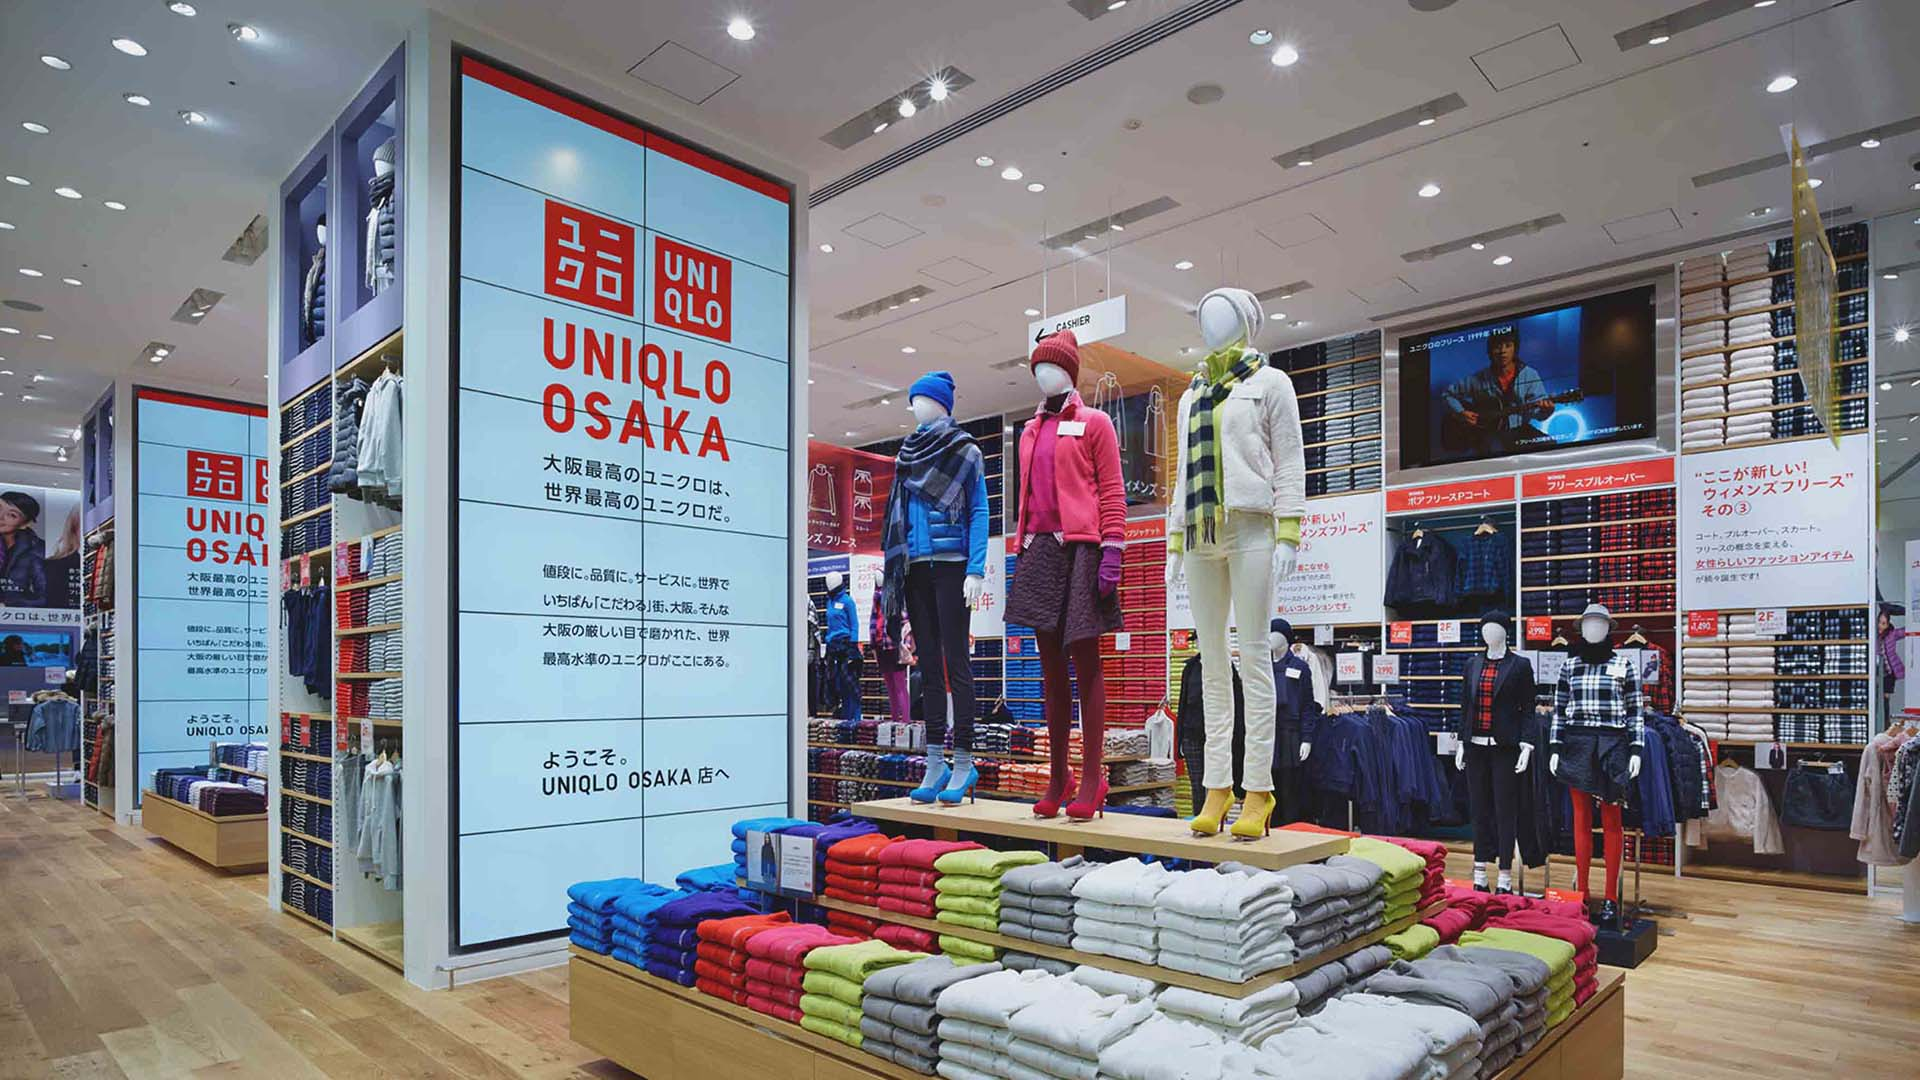 Uniqlo inspire customers with great in-store design and Digital Signage